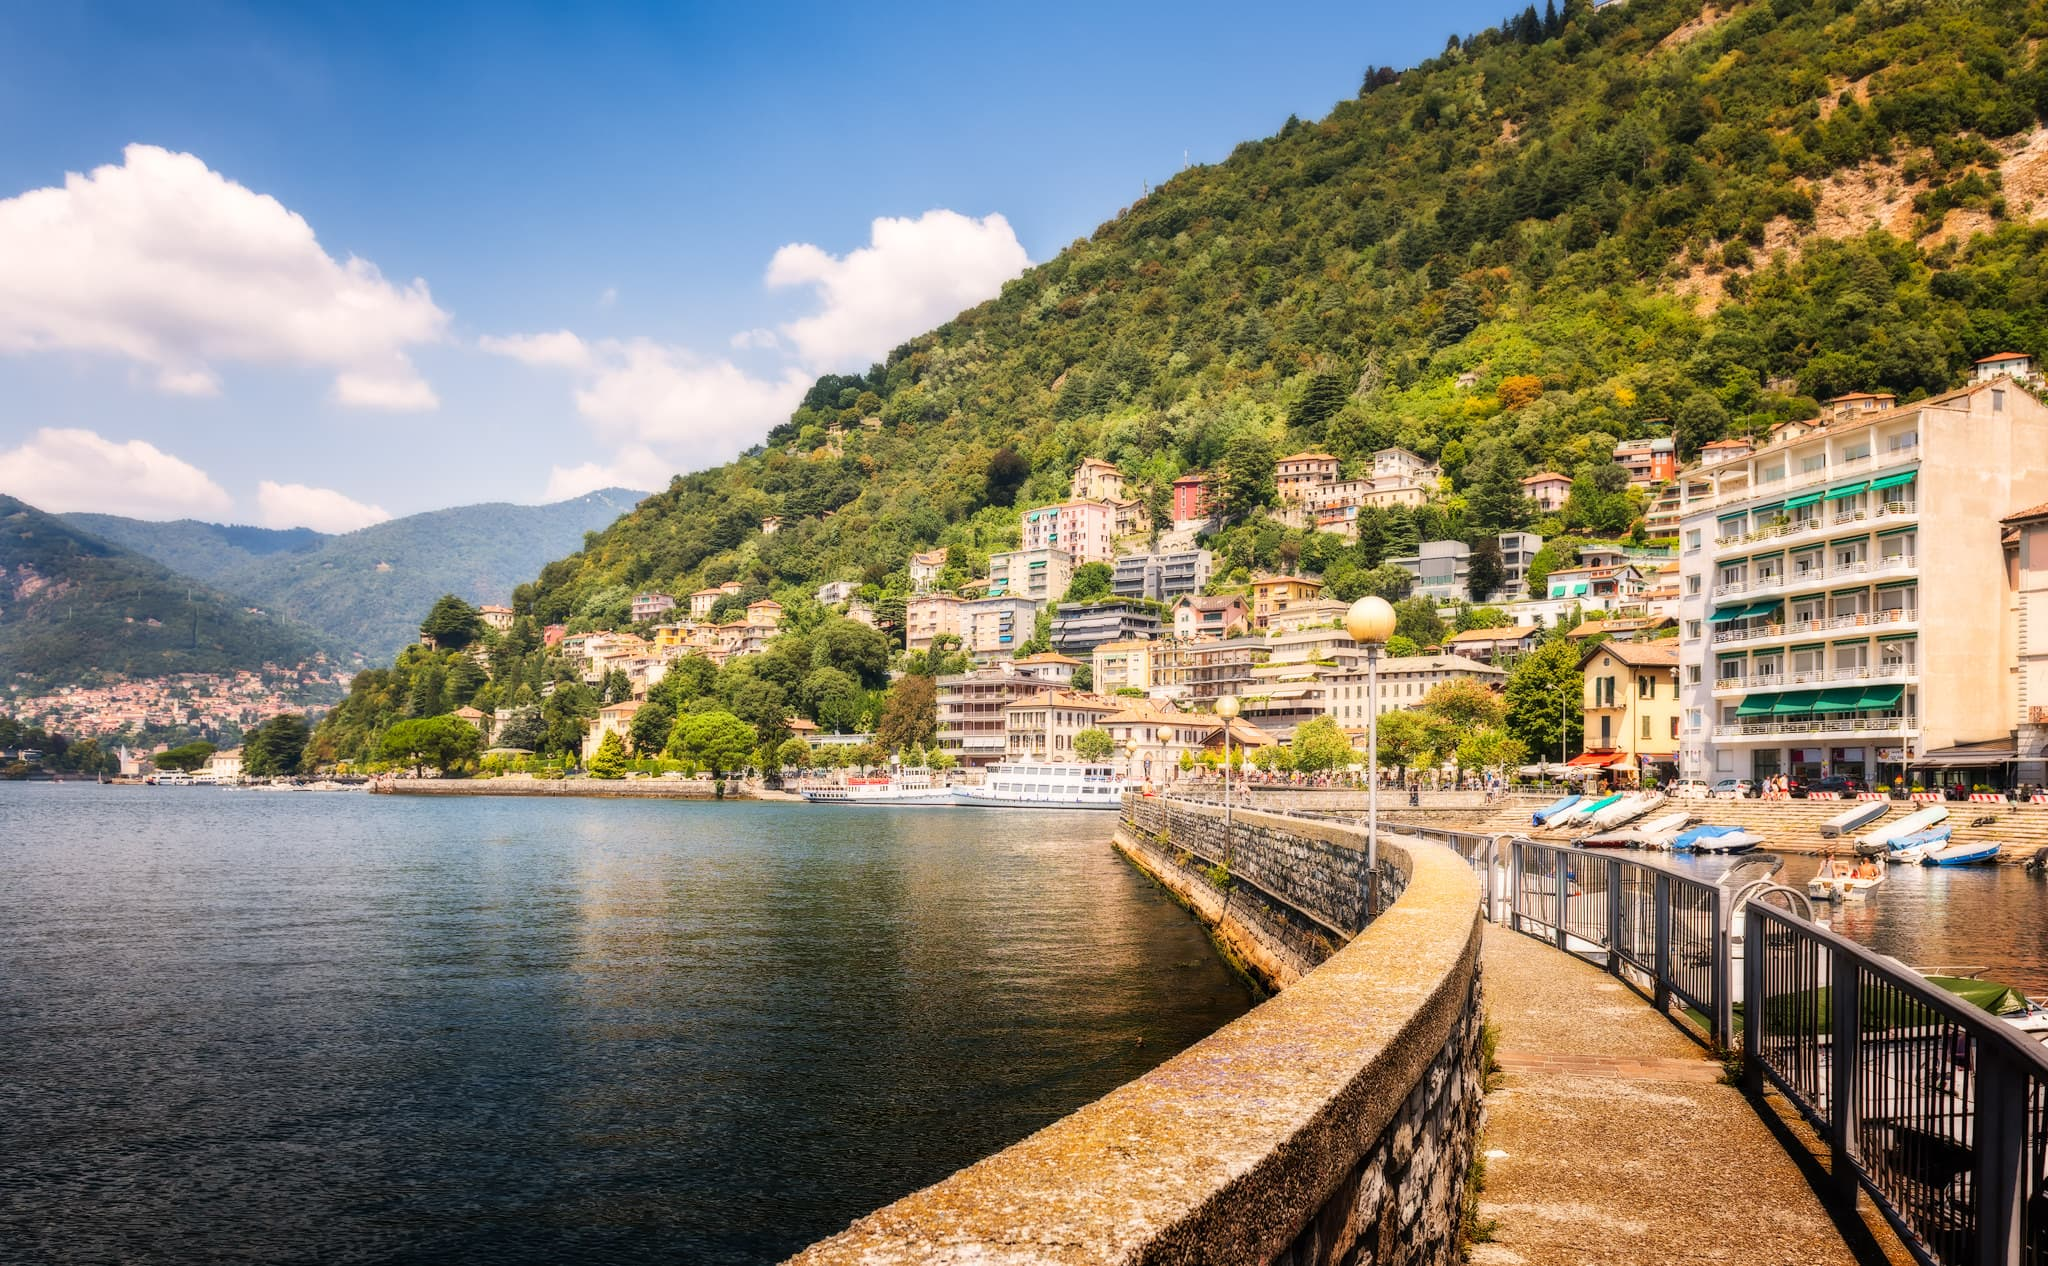 Panorama of Como in Italy - the lake city and the Alps